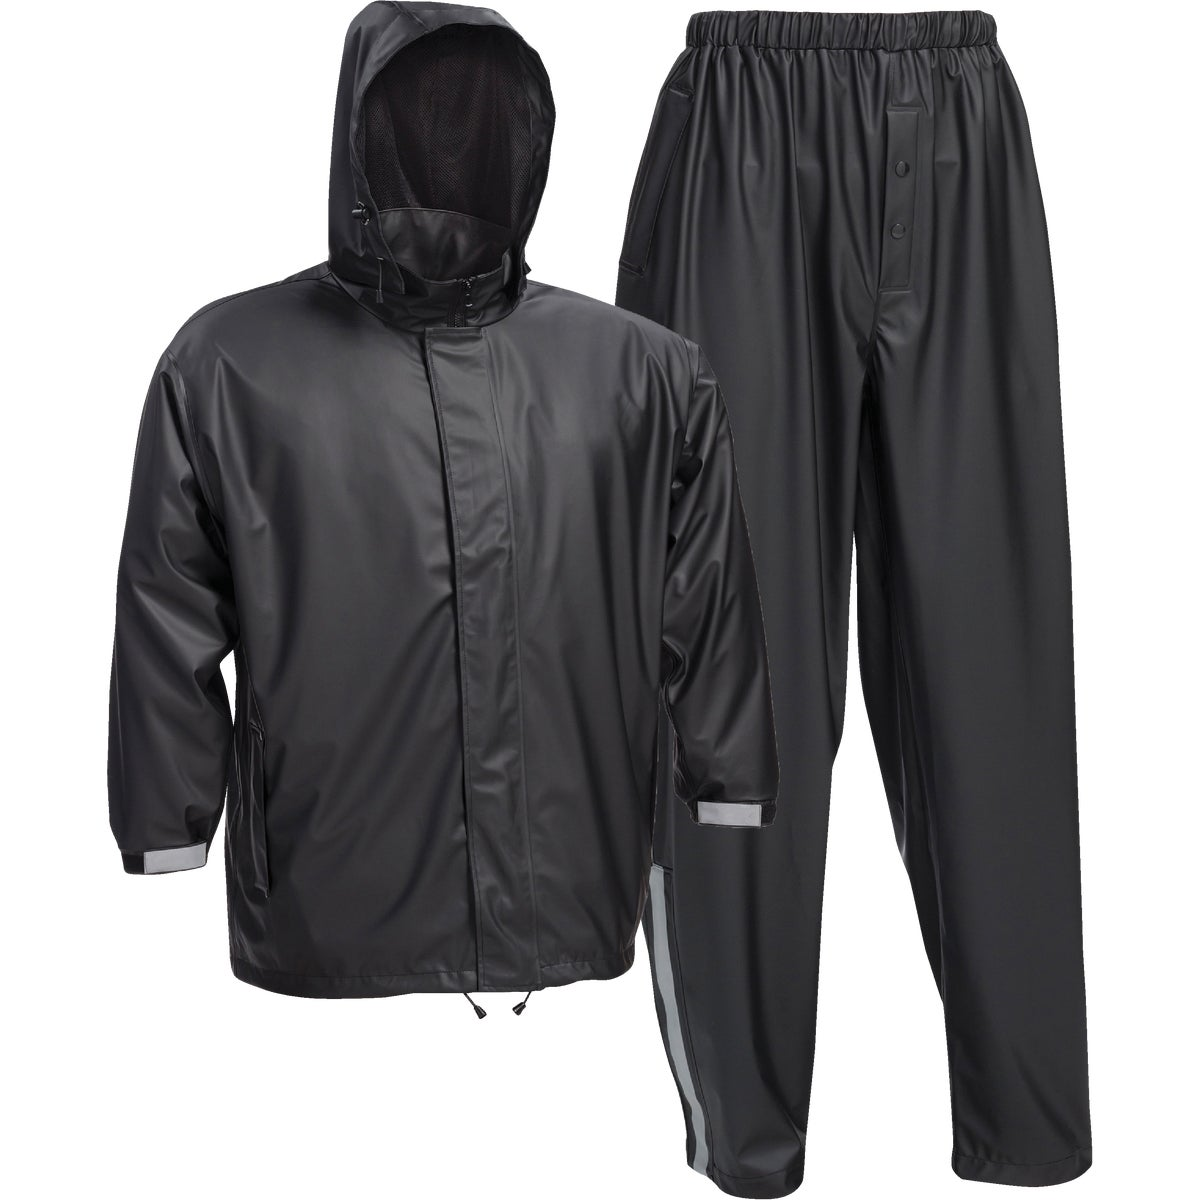 XXL BLK NYLON RAINSUIT